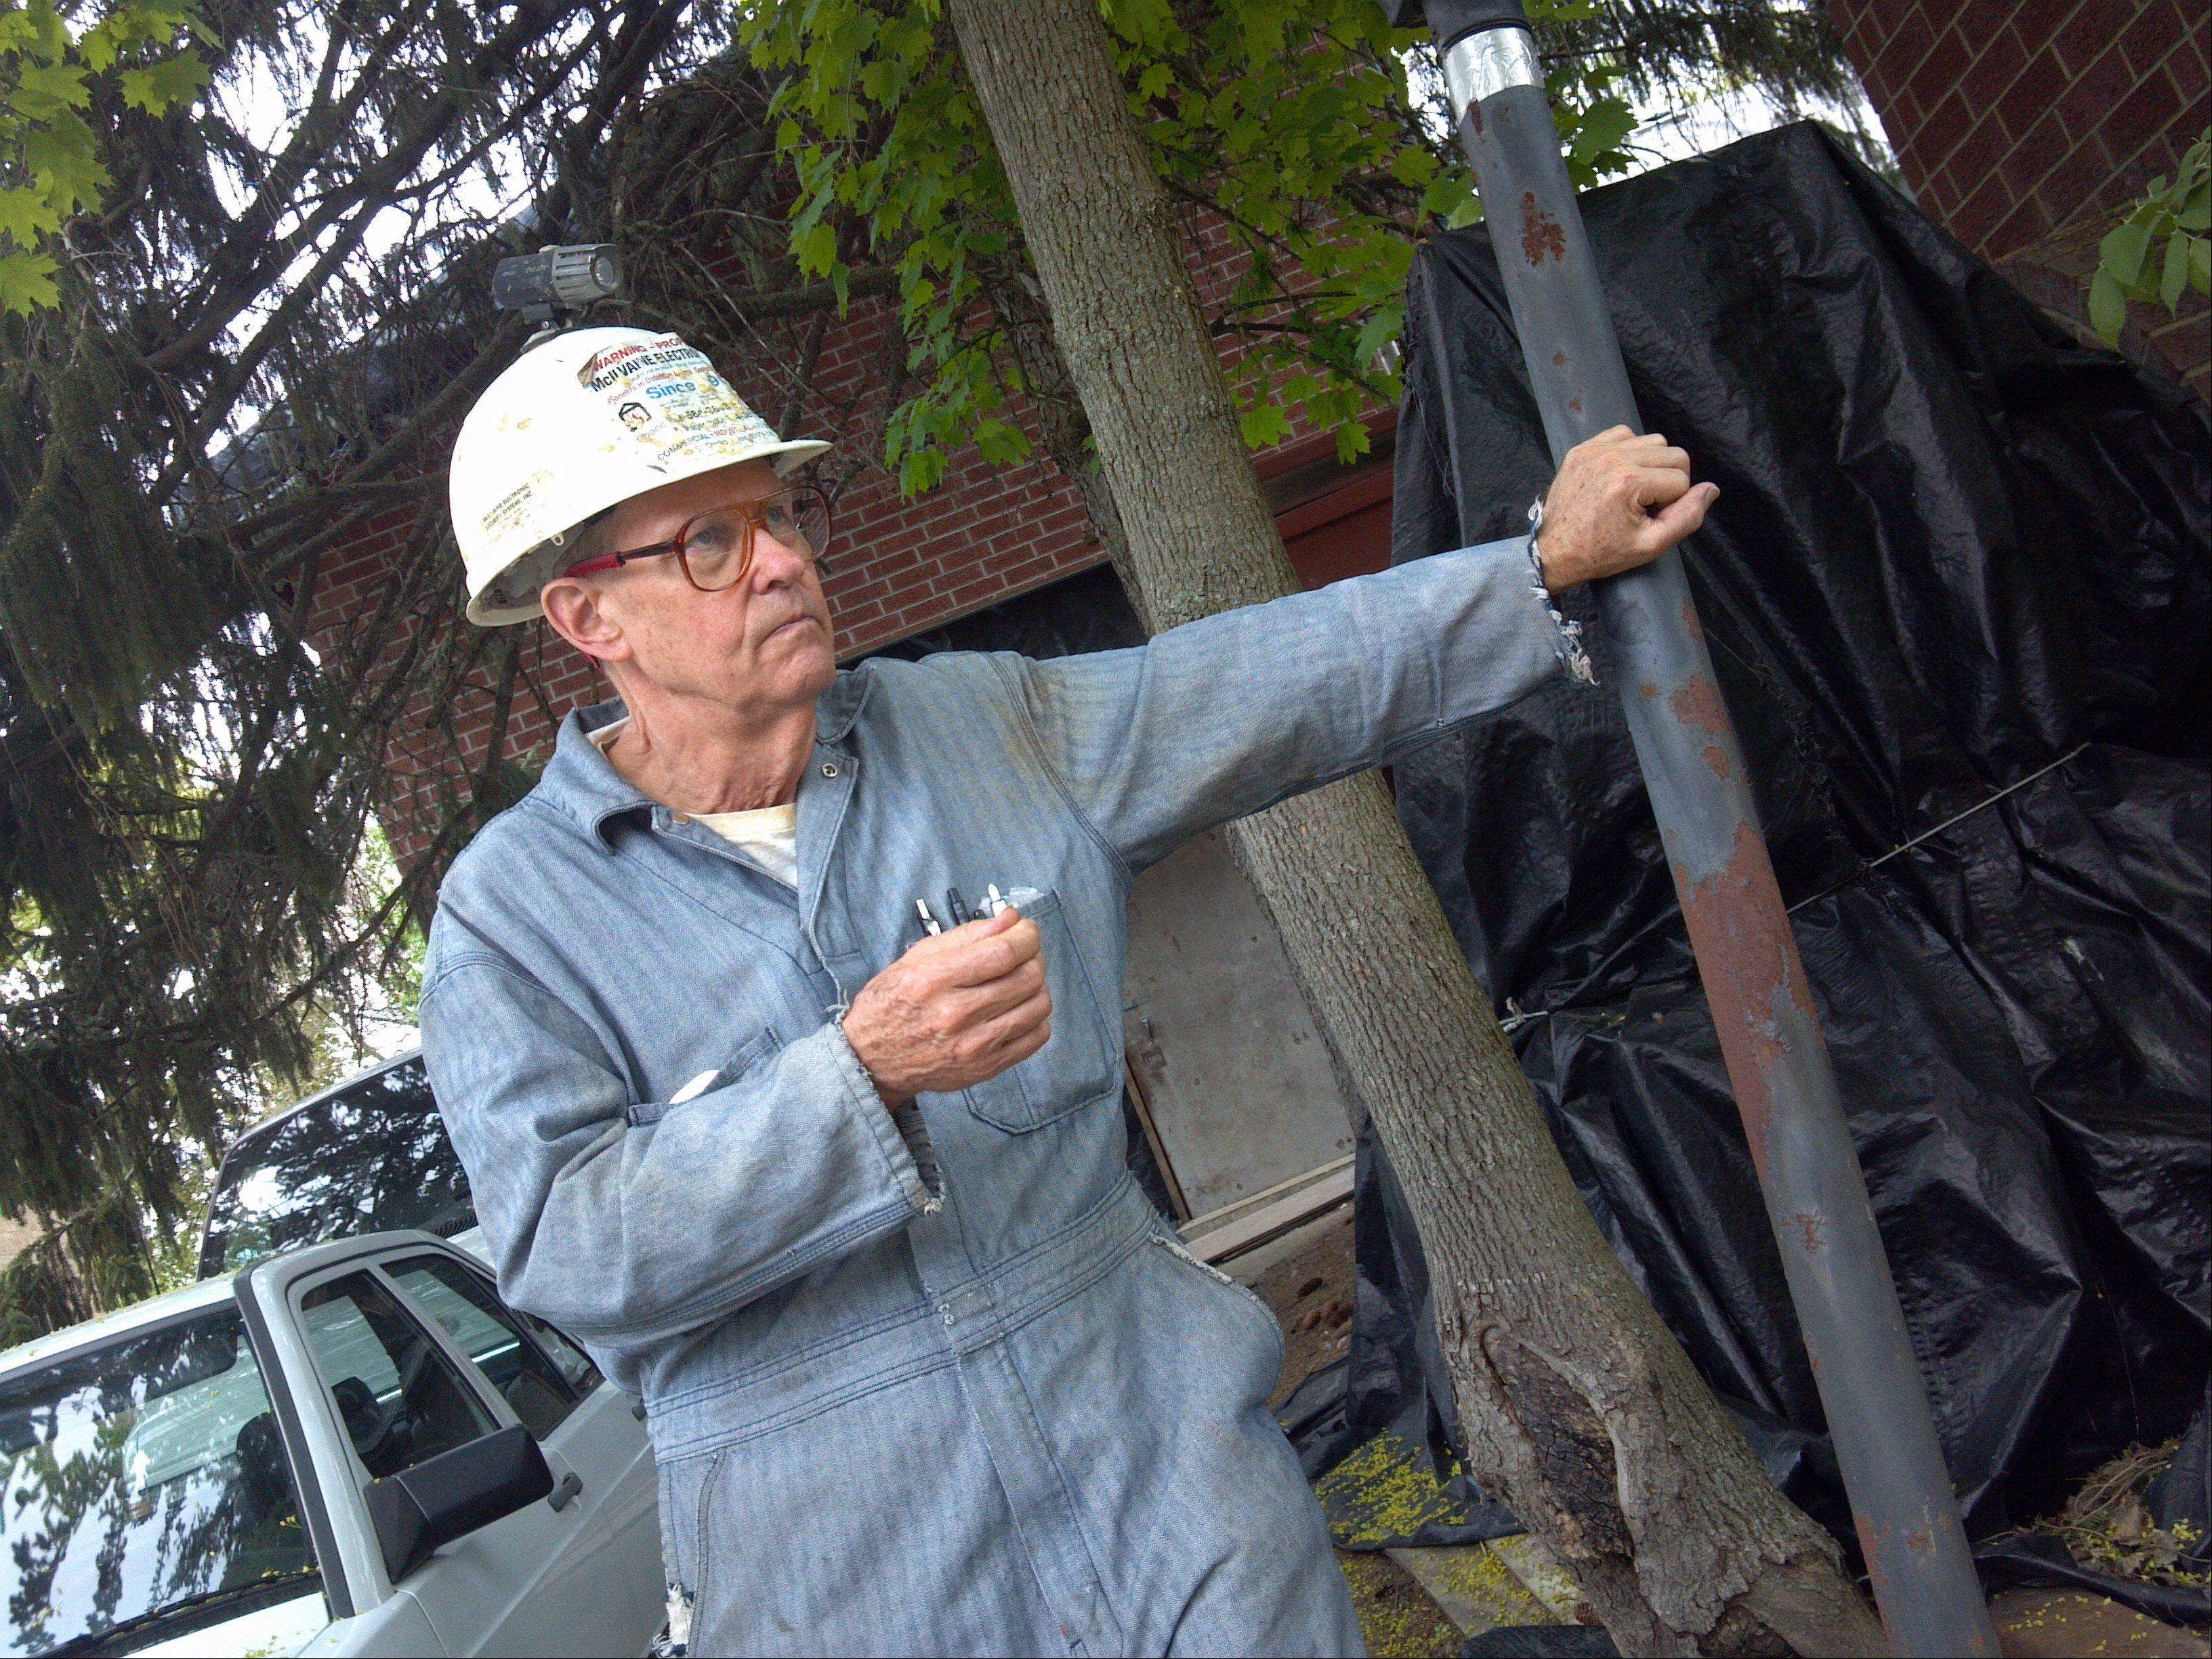 Cliff McIlvaine asked a Kane County judge Friday to order St. Charles to pay for damage caused when a contractor the city hired to finish his roof failed to secure tarps properly, and a subsequent heavy downpour damaged some of his belongings.